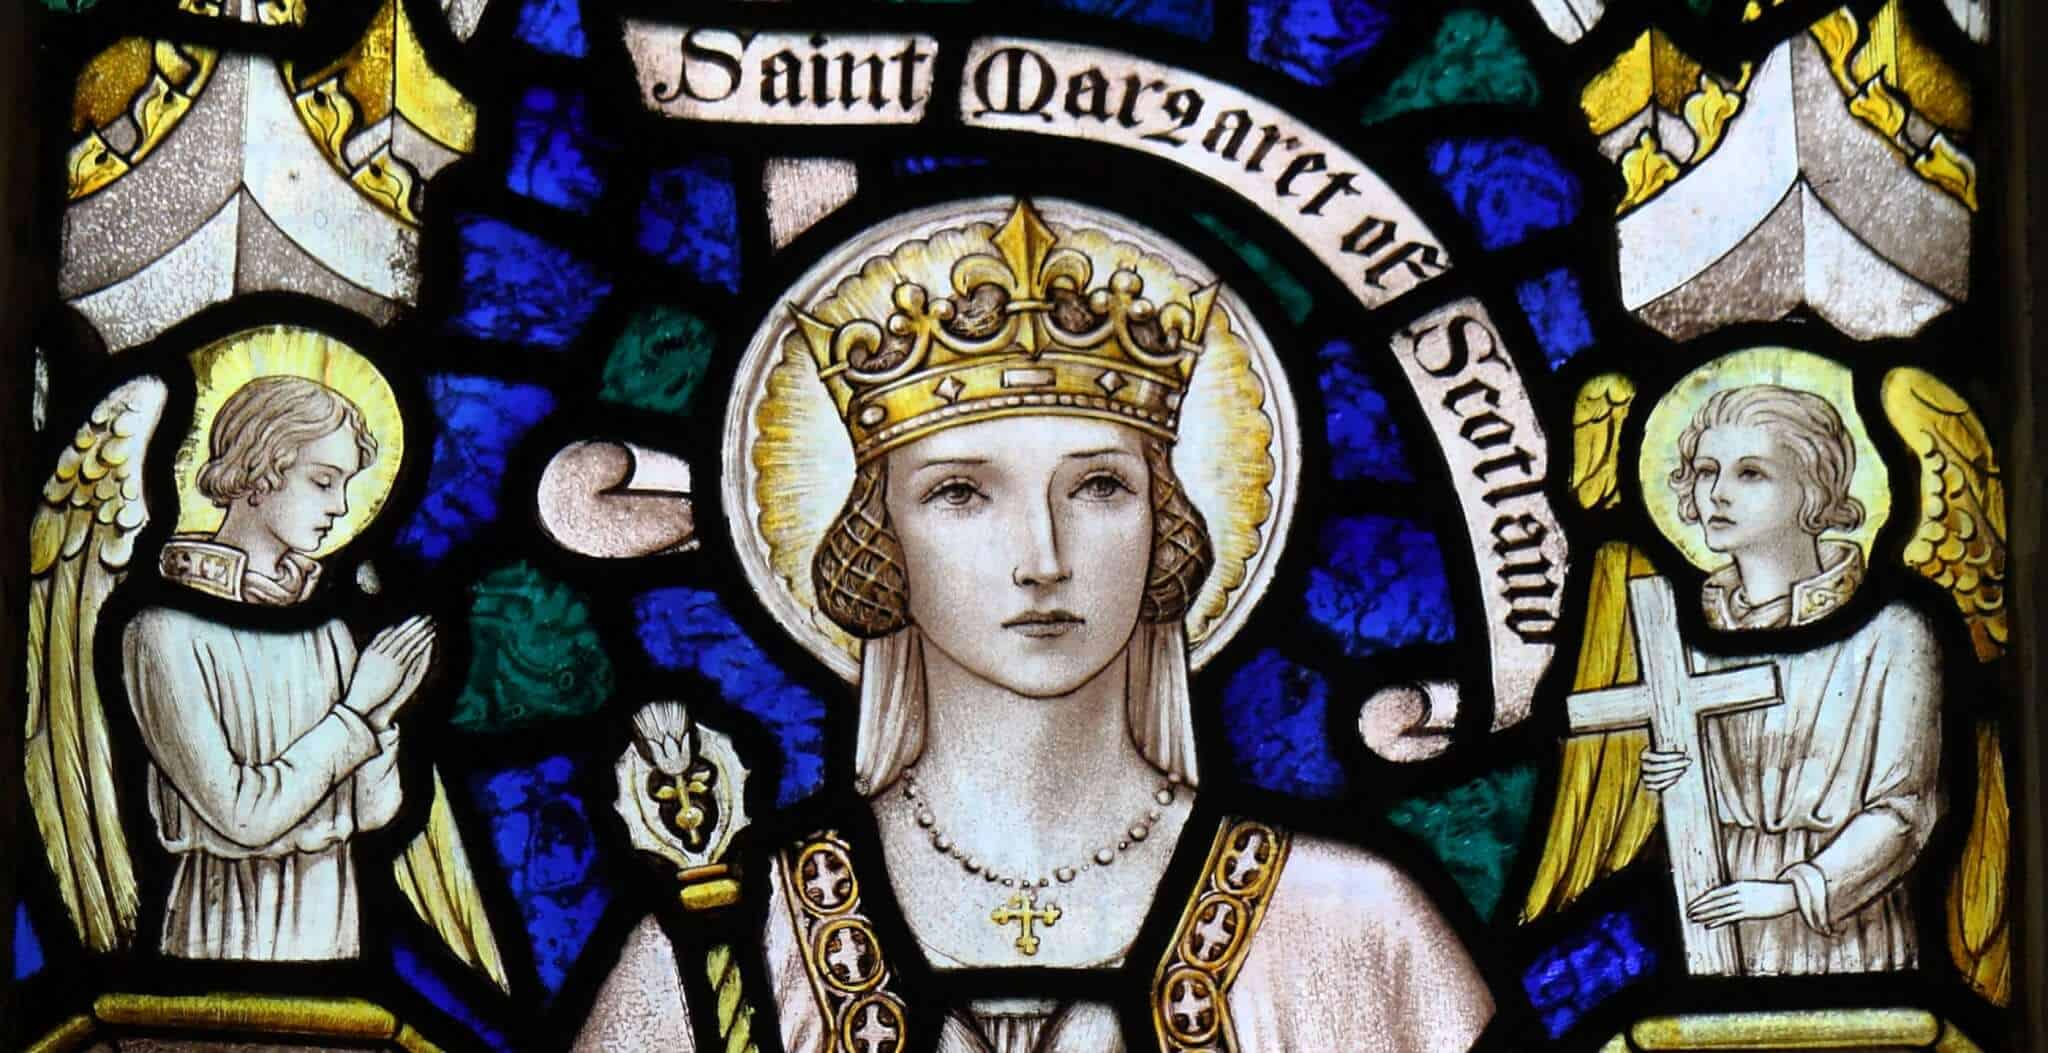 Edinburgh History & The Stories Behind the Stories: Queen Margaret of Scotland